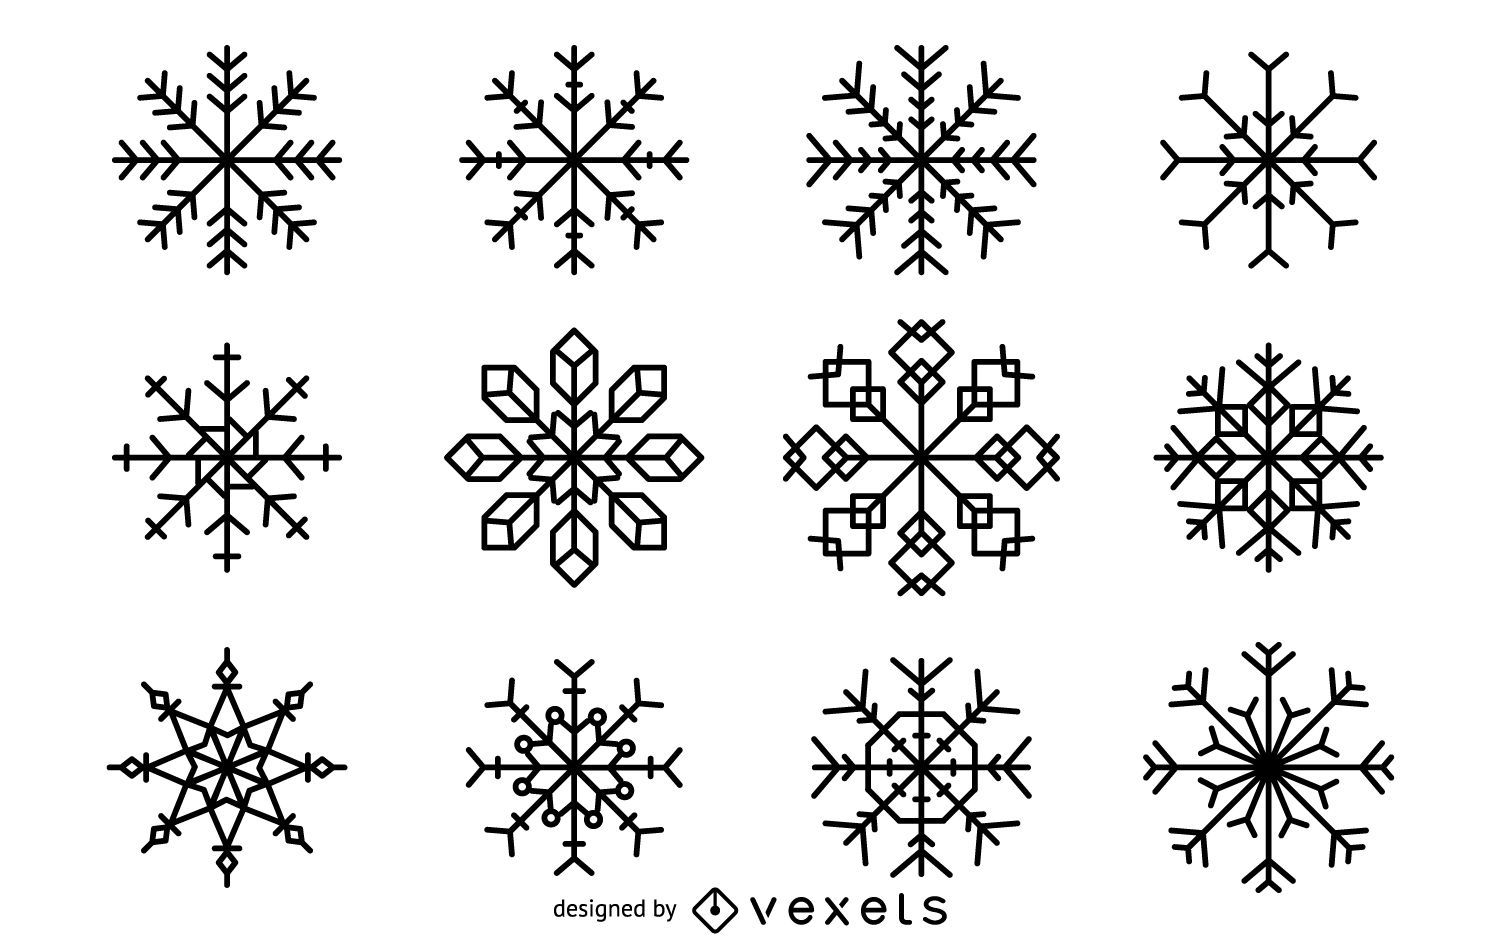 Christmas snowflakes illustration set - Vector download